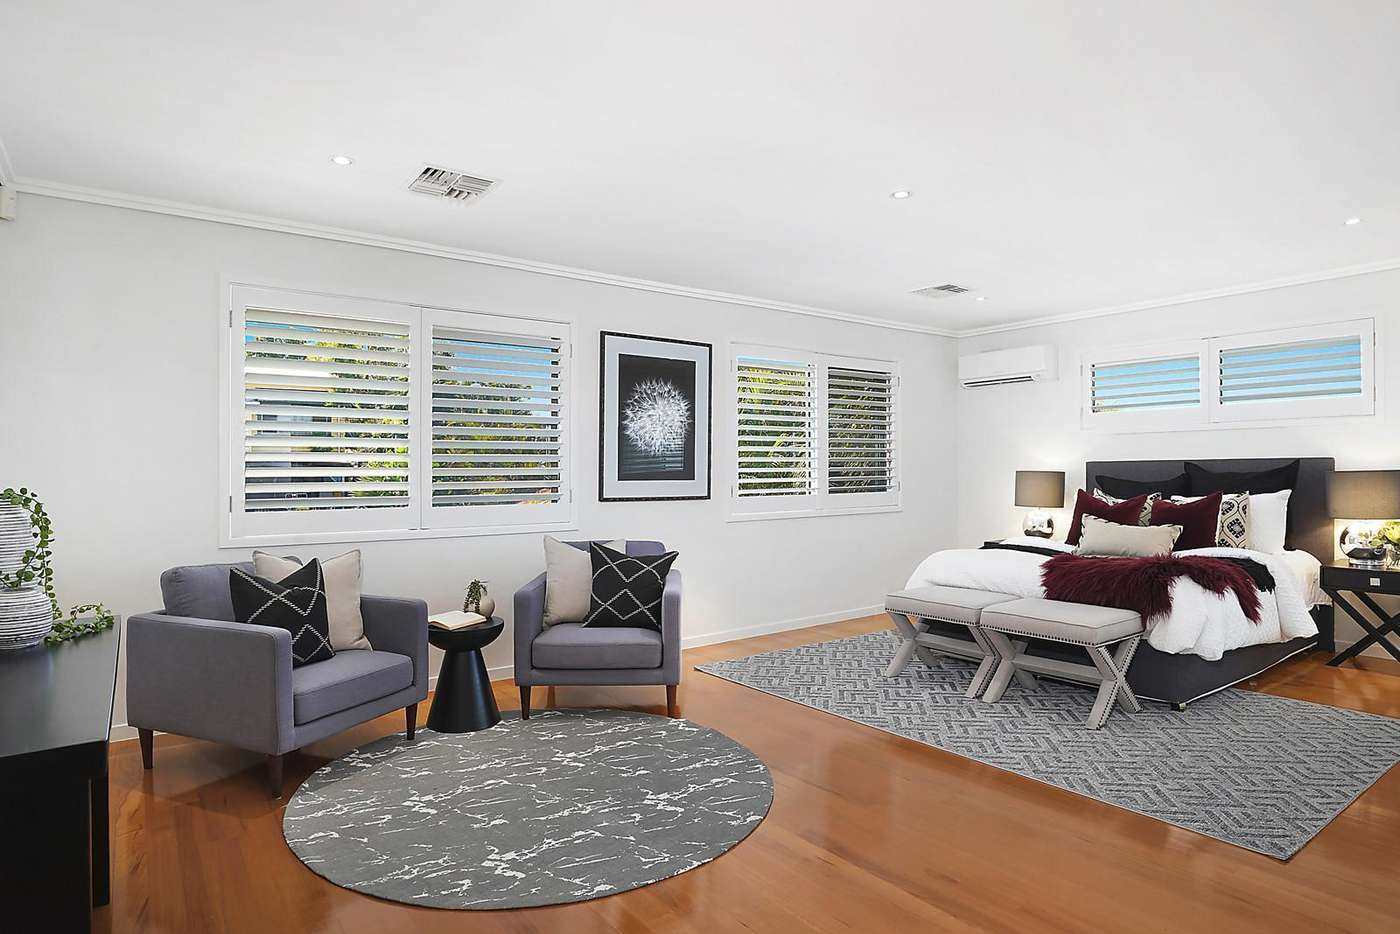 Sixth view of Homely house listing, 20 Michael Street, Bulimba QLD 4171